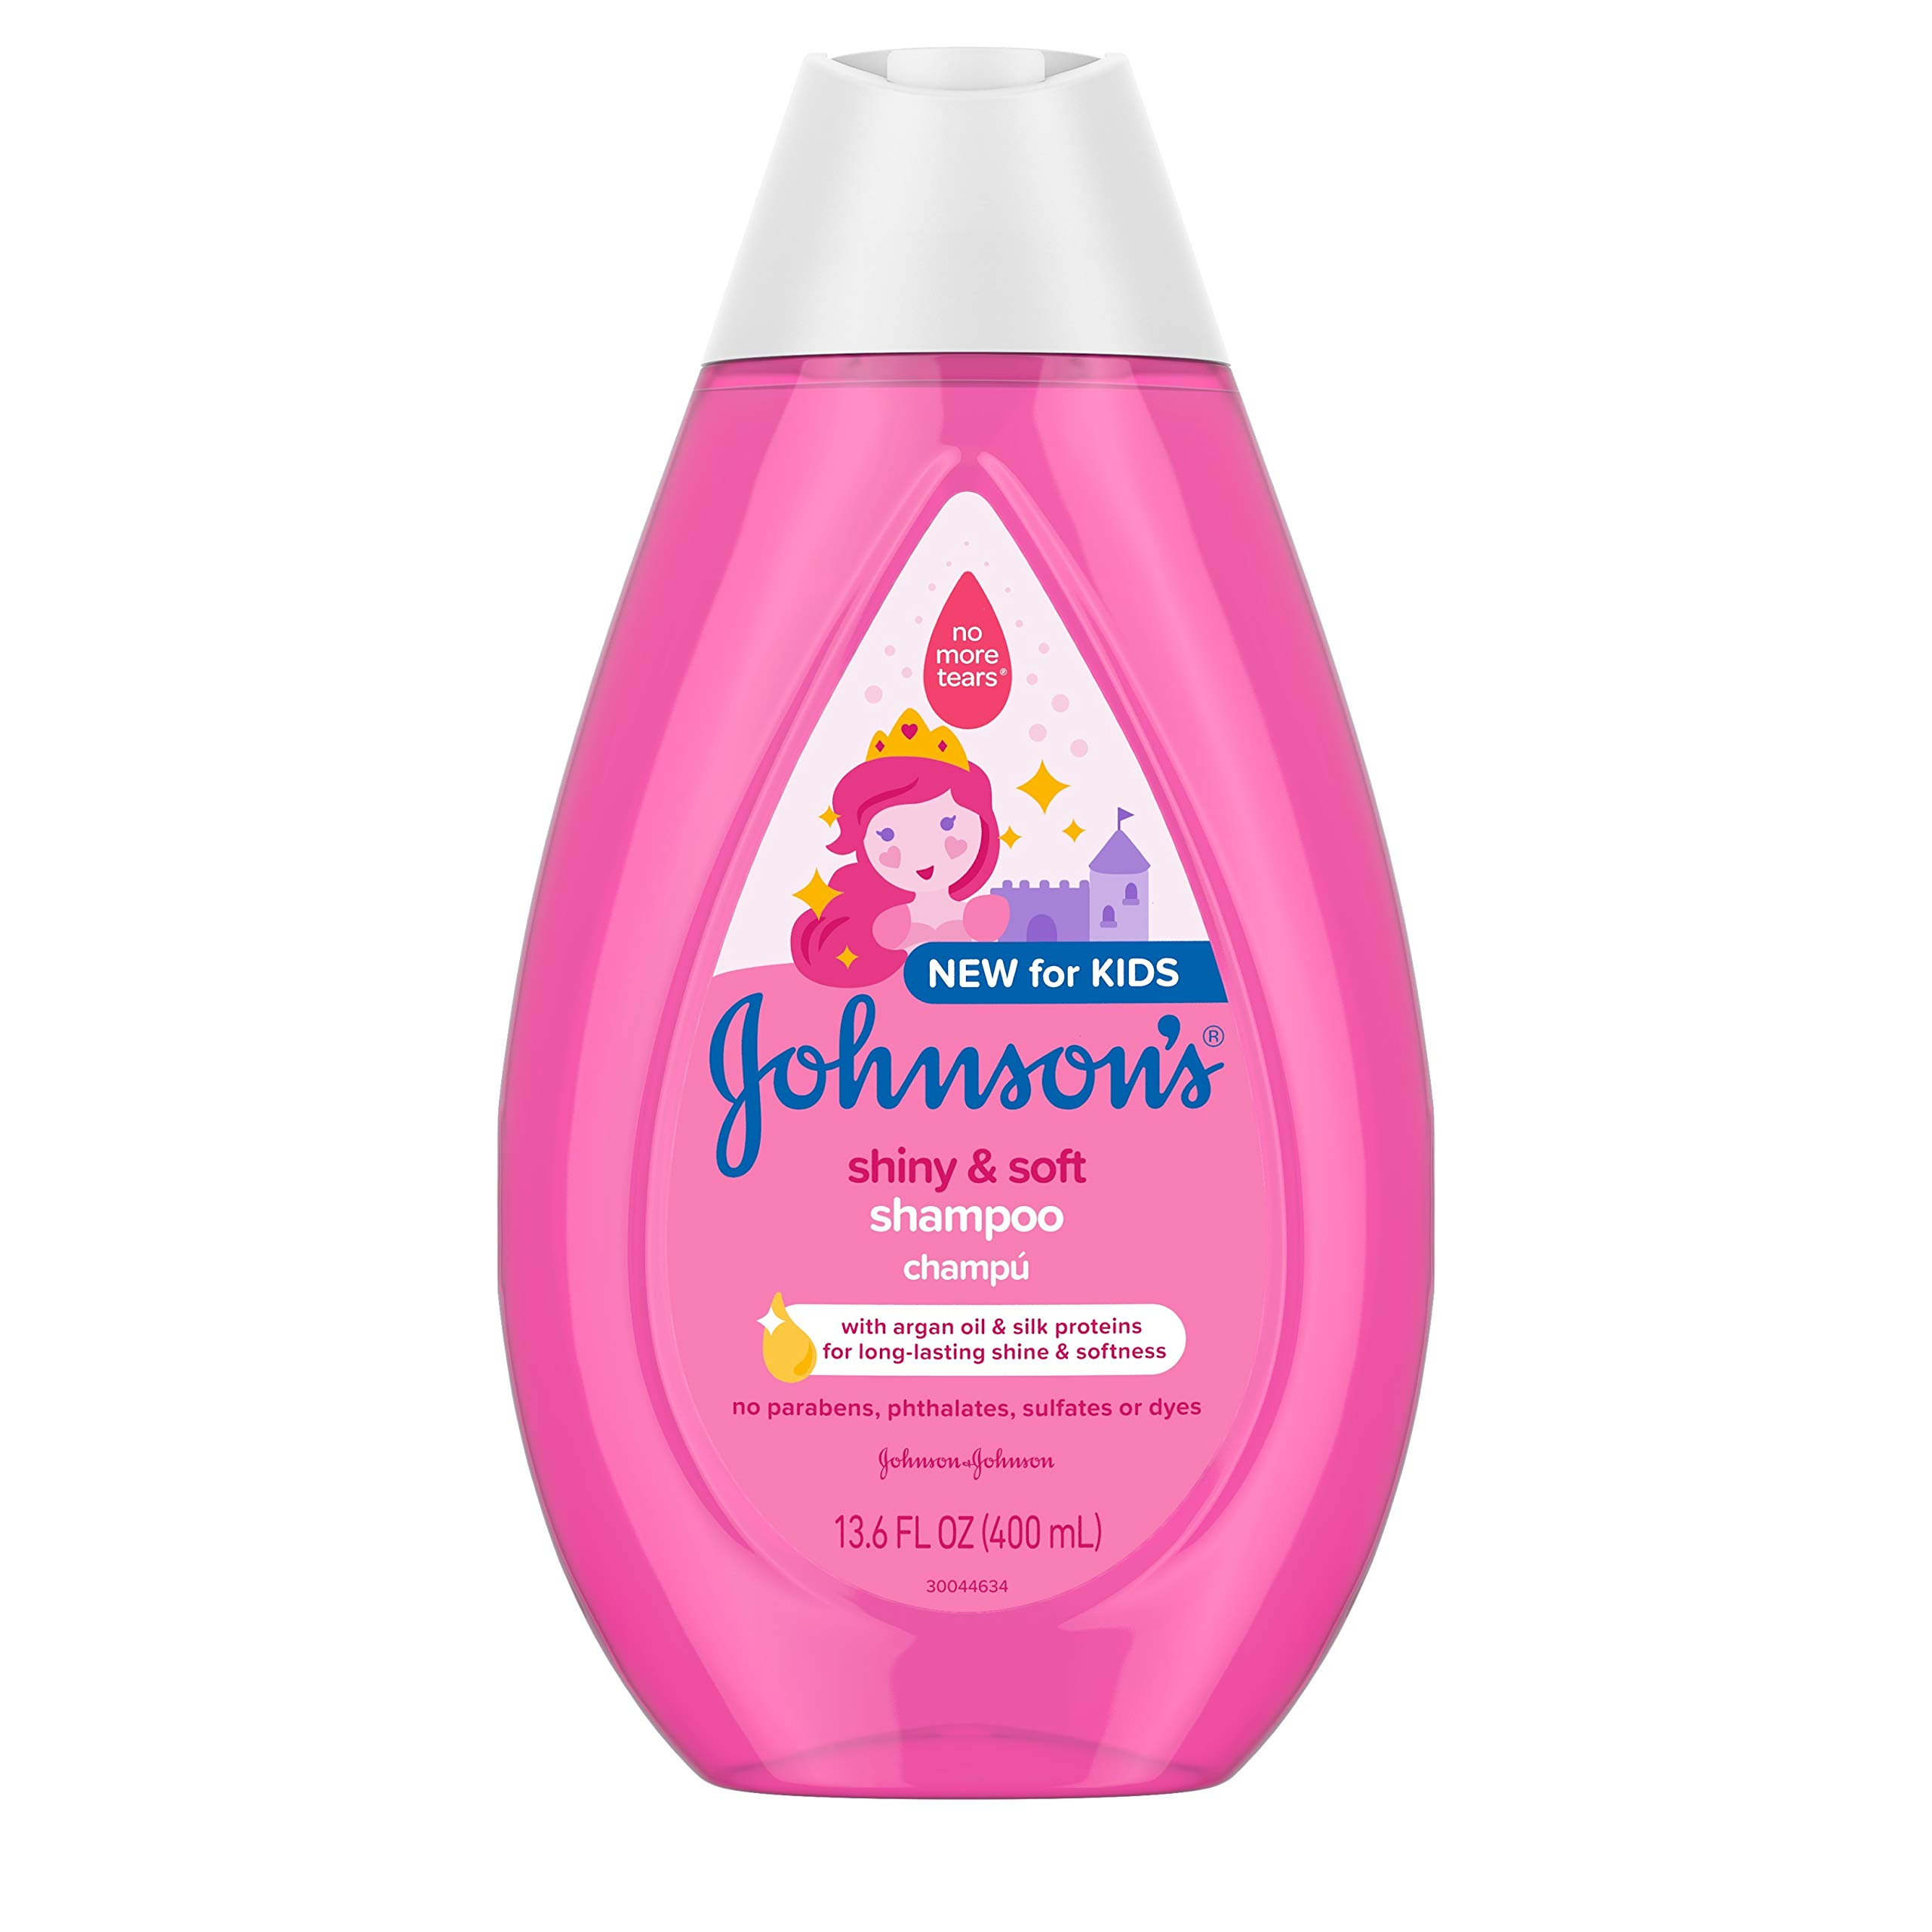 Johnson's Baby Shiny Soft TearFree Kids' Shampoo with Argan Oil Silk Proteins Paraben Sulfate DyeFree Formula…